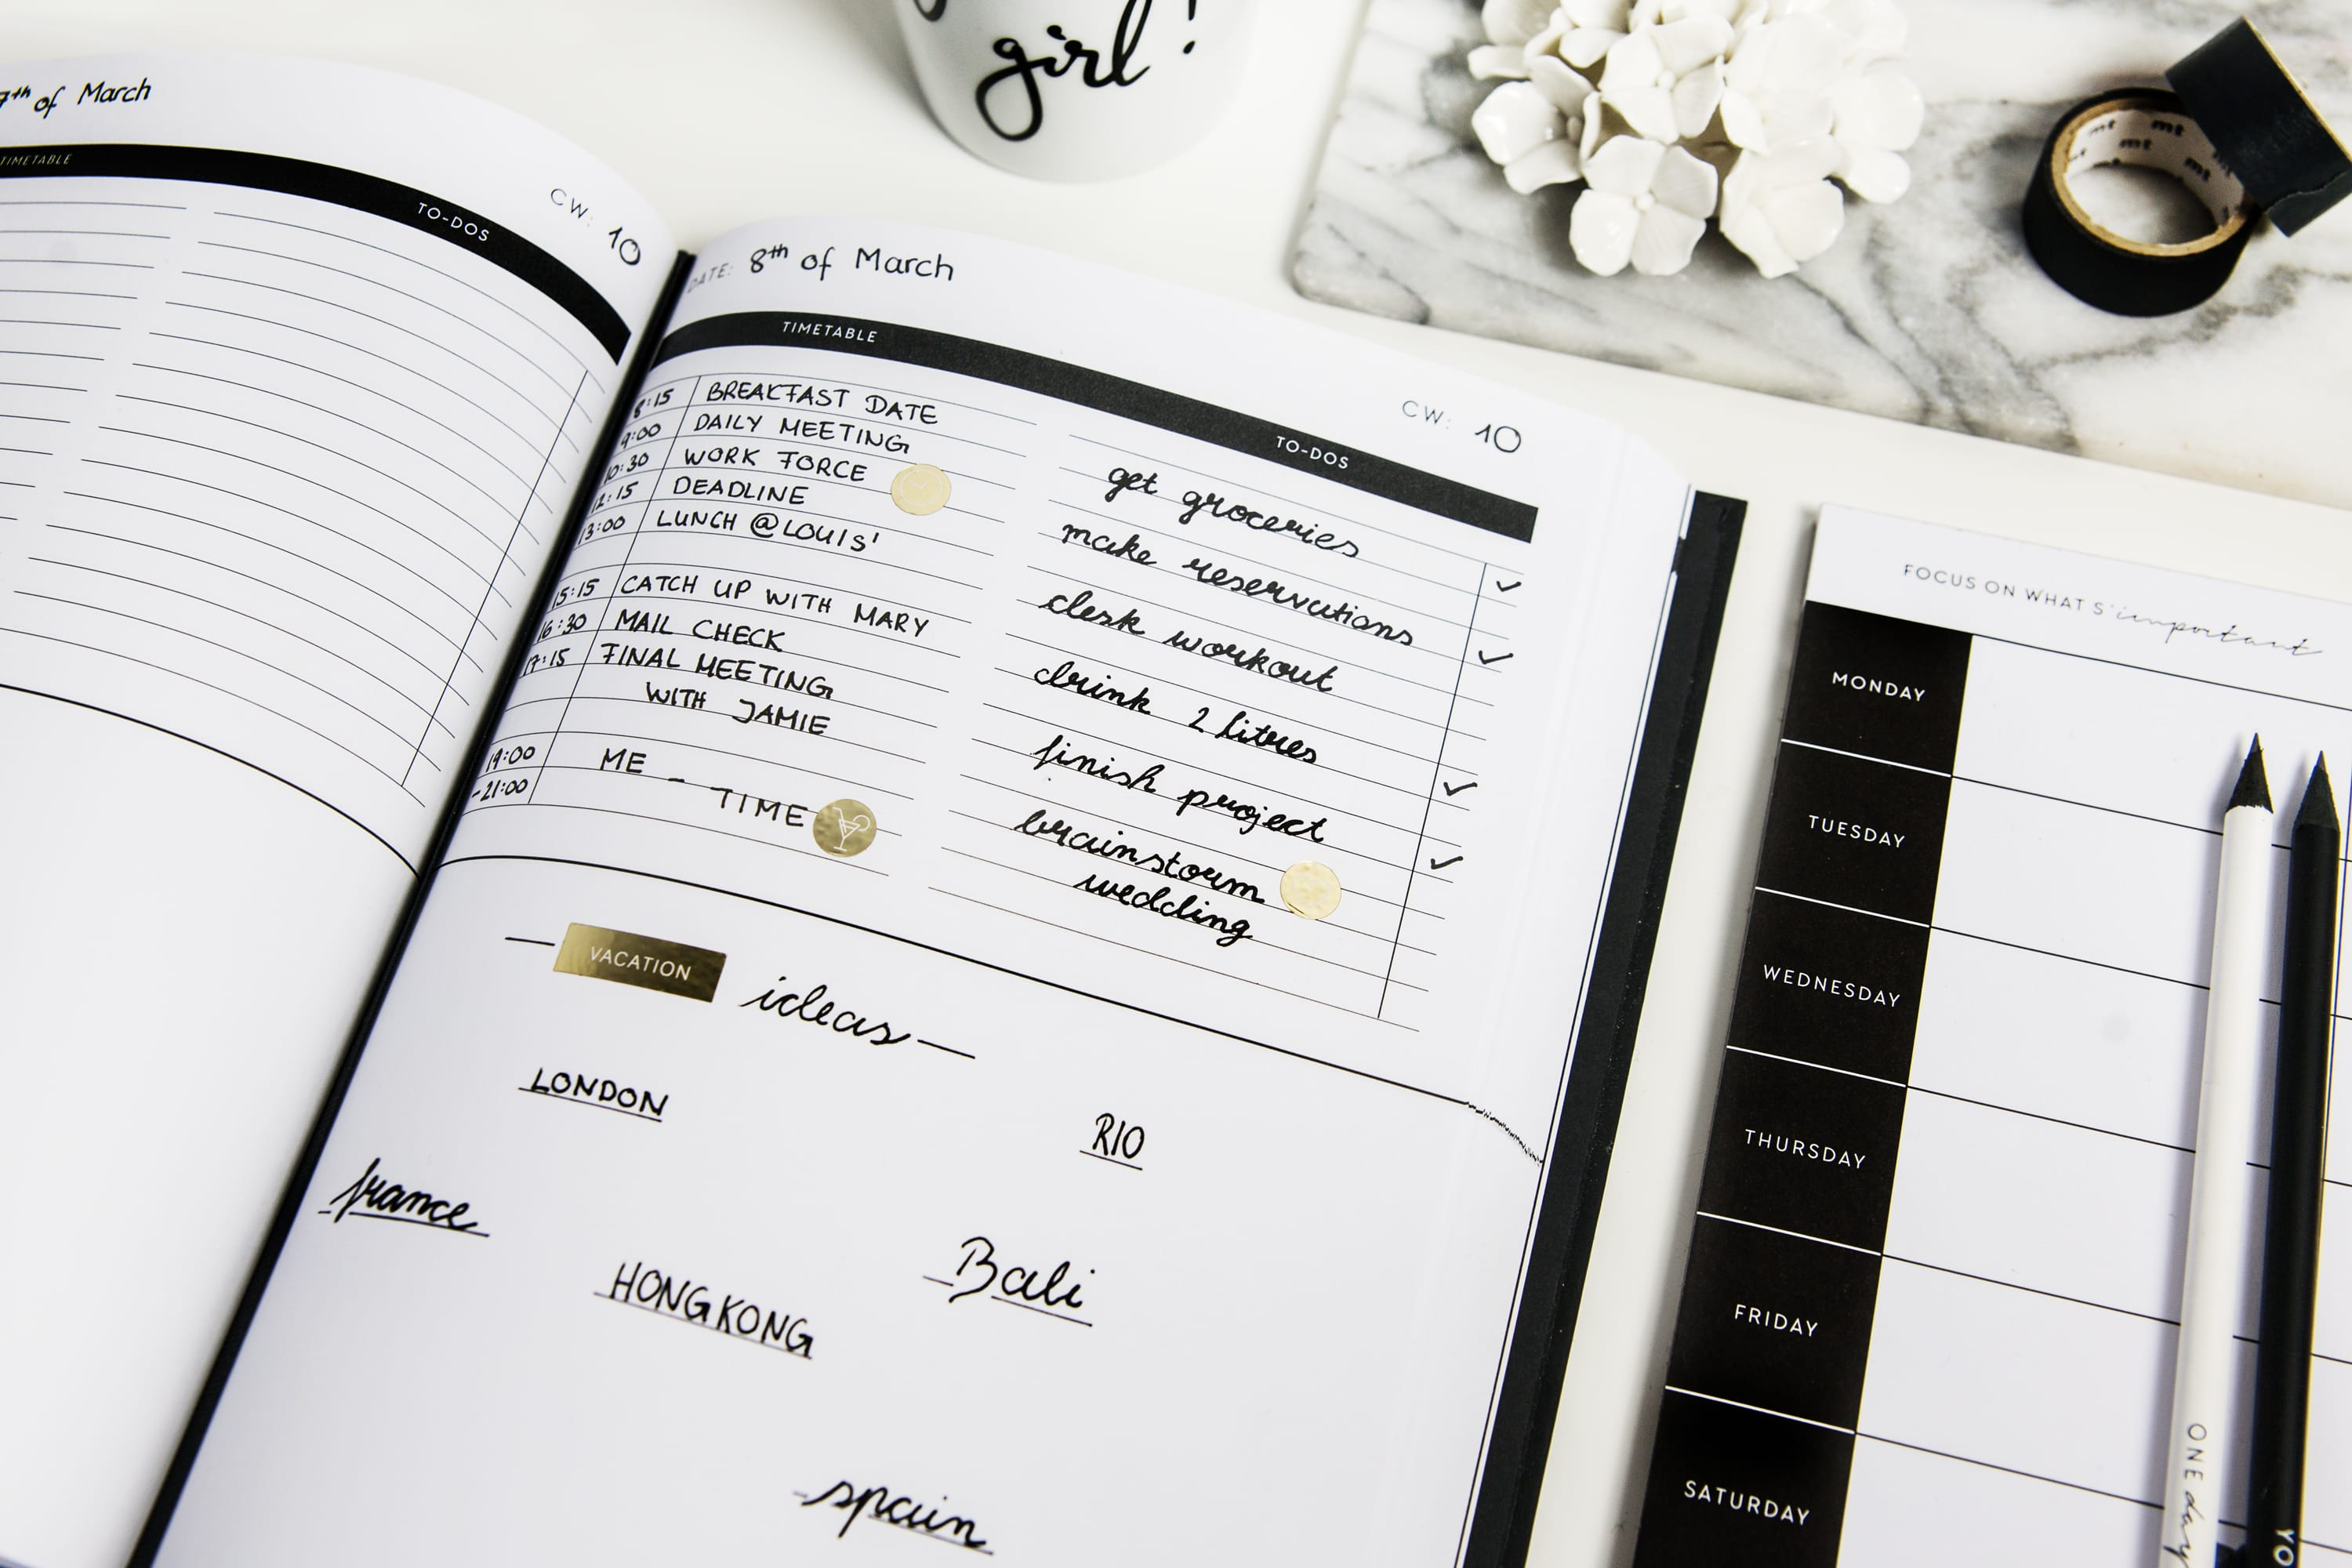 JO_and_JUDY_Blog_Daily_Planner_025aa13d58547fd